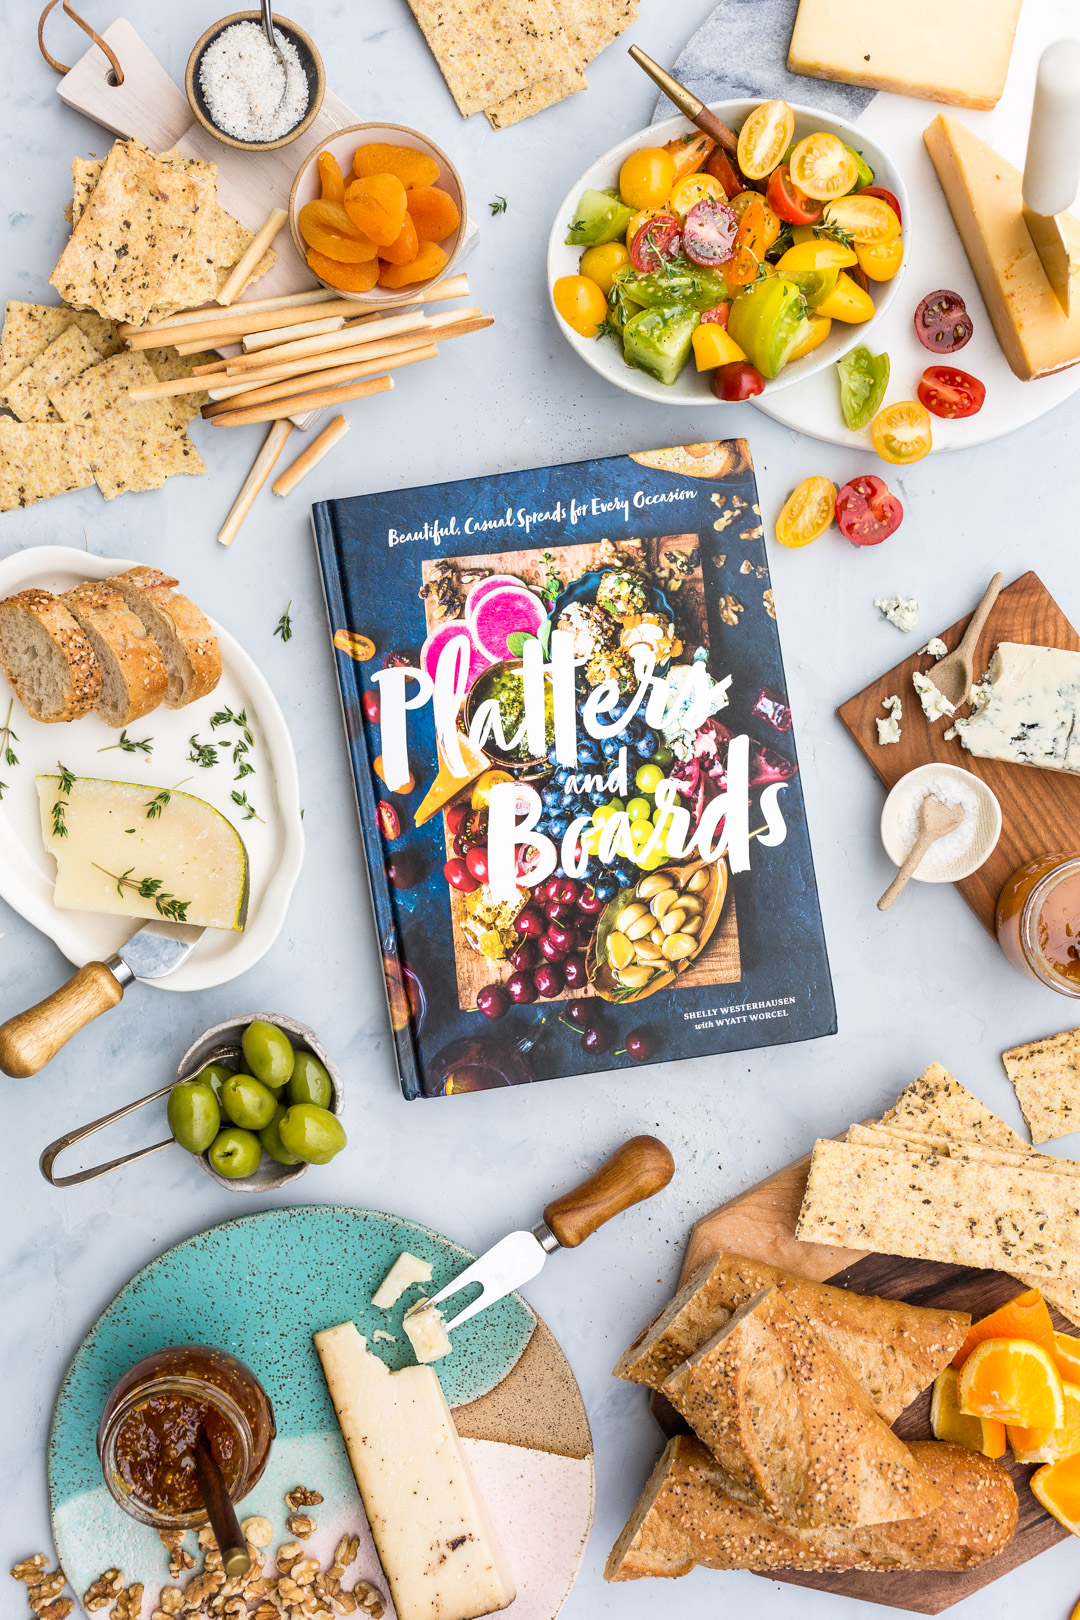 Platters & Boards is out TODAY!